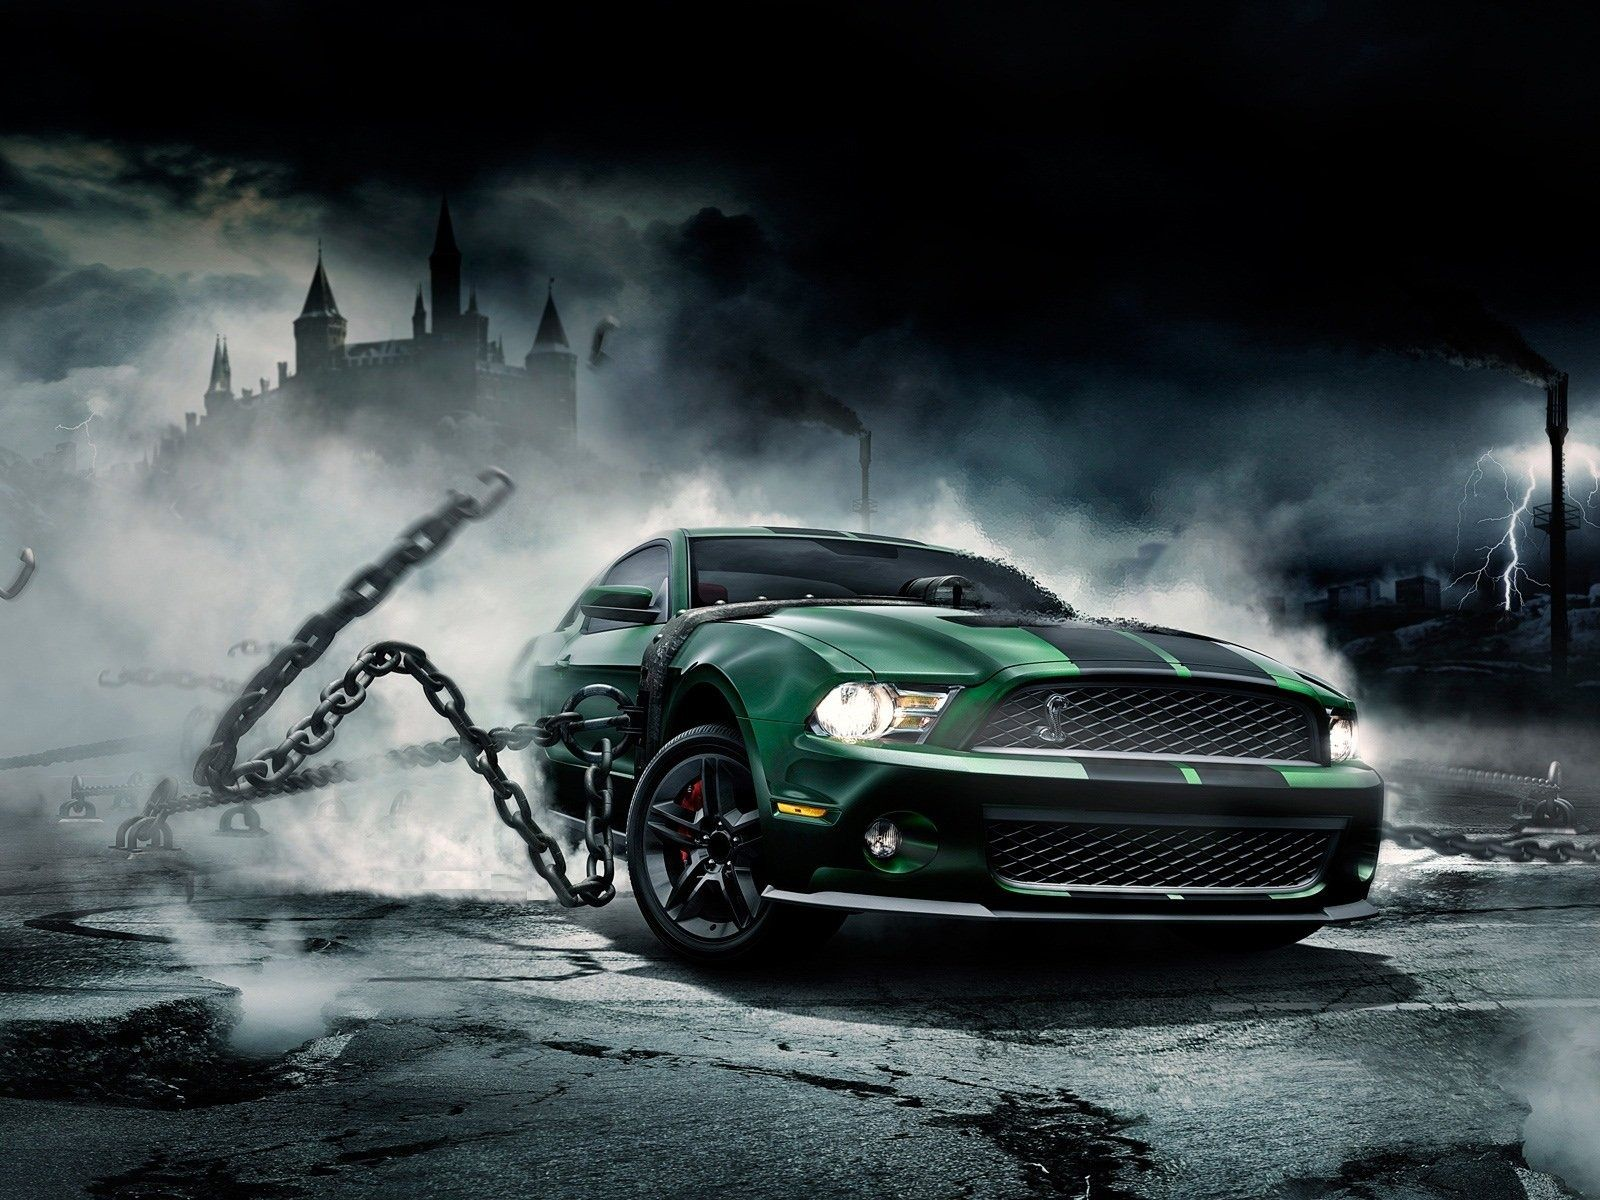 Cool Cars Wallpaper Wallpaper Awesome Cars For My Boys - Cool cars for wallpaper